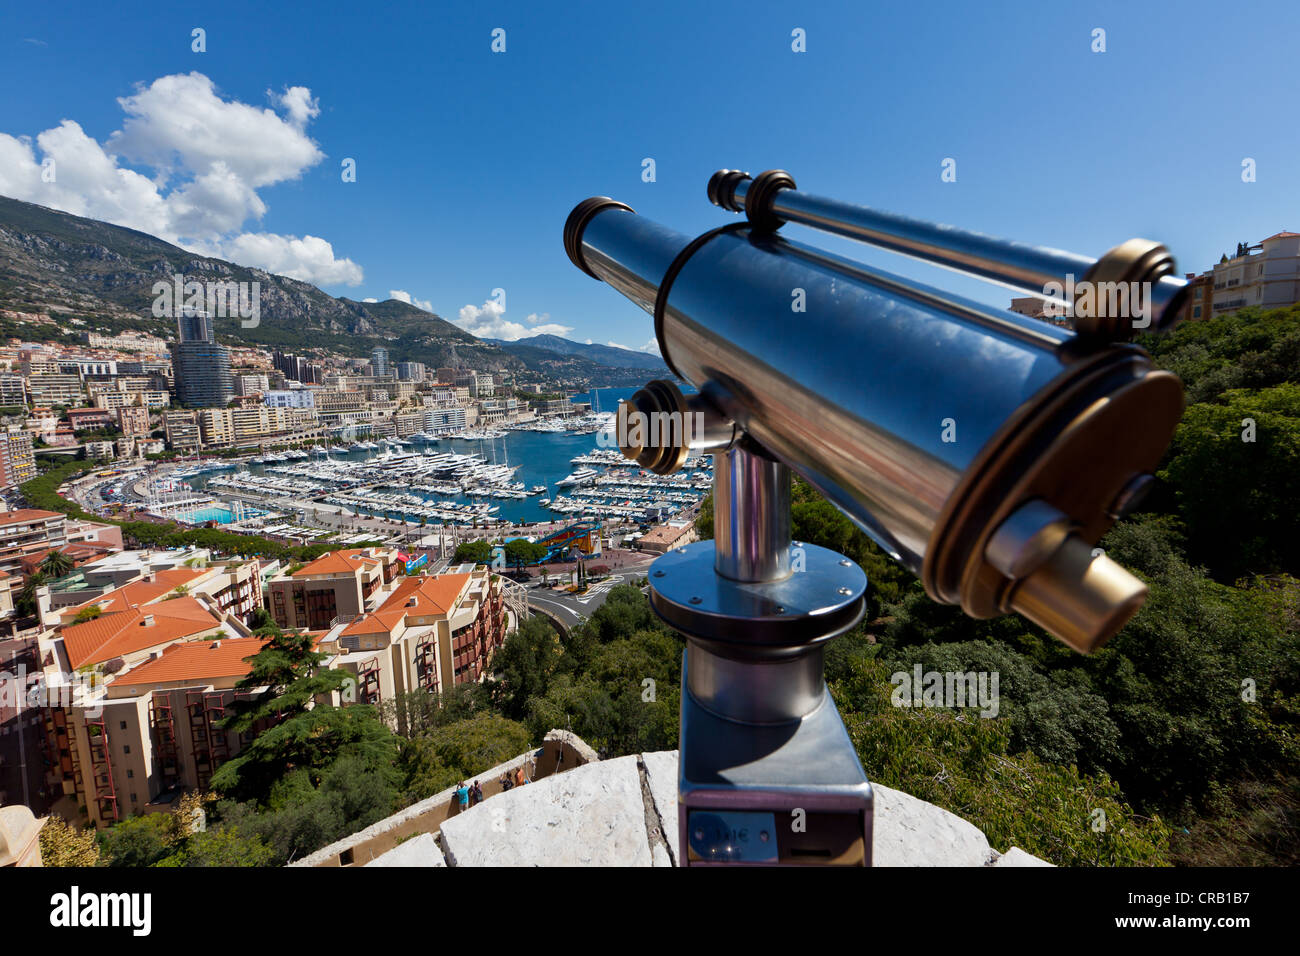 Overlooking the harbour of Monaco, Port Hercule, Monte Carlo, principality of Monaco, Cote d'Azur, Mediterranean, - Stock Image